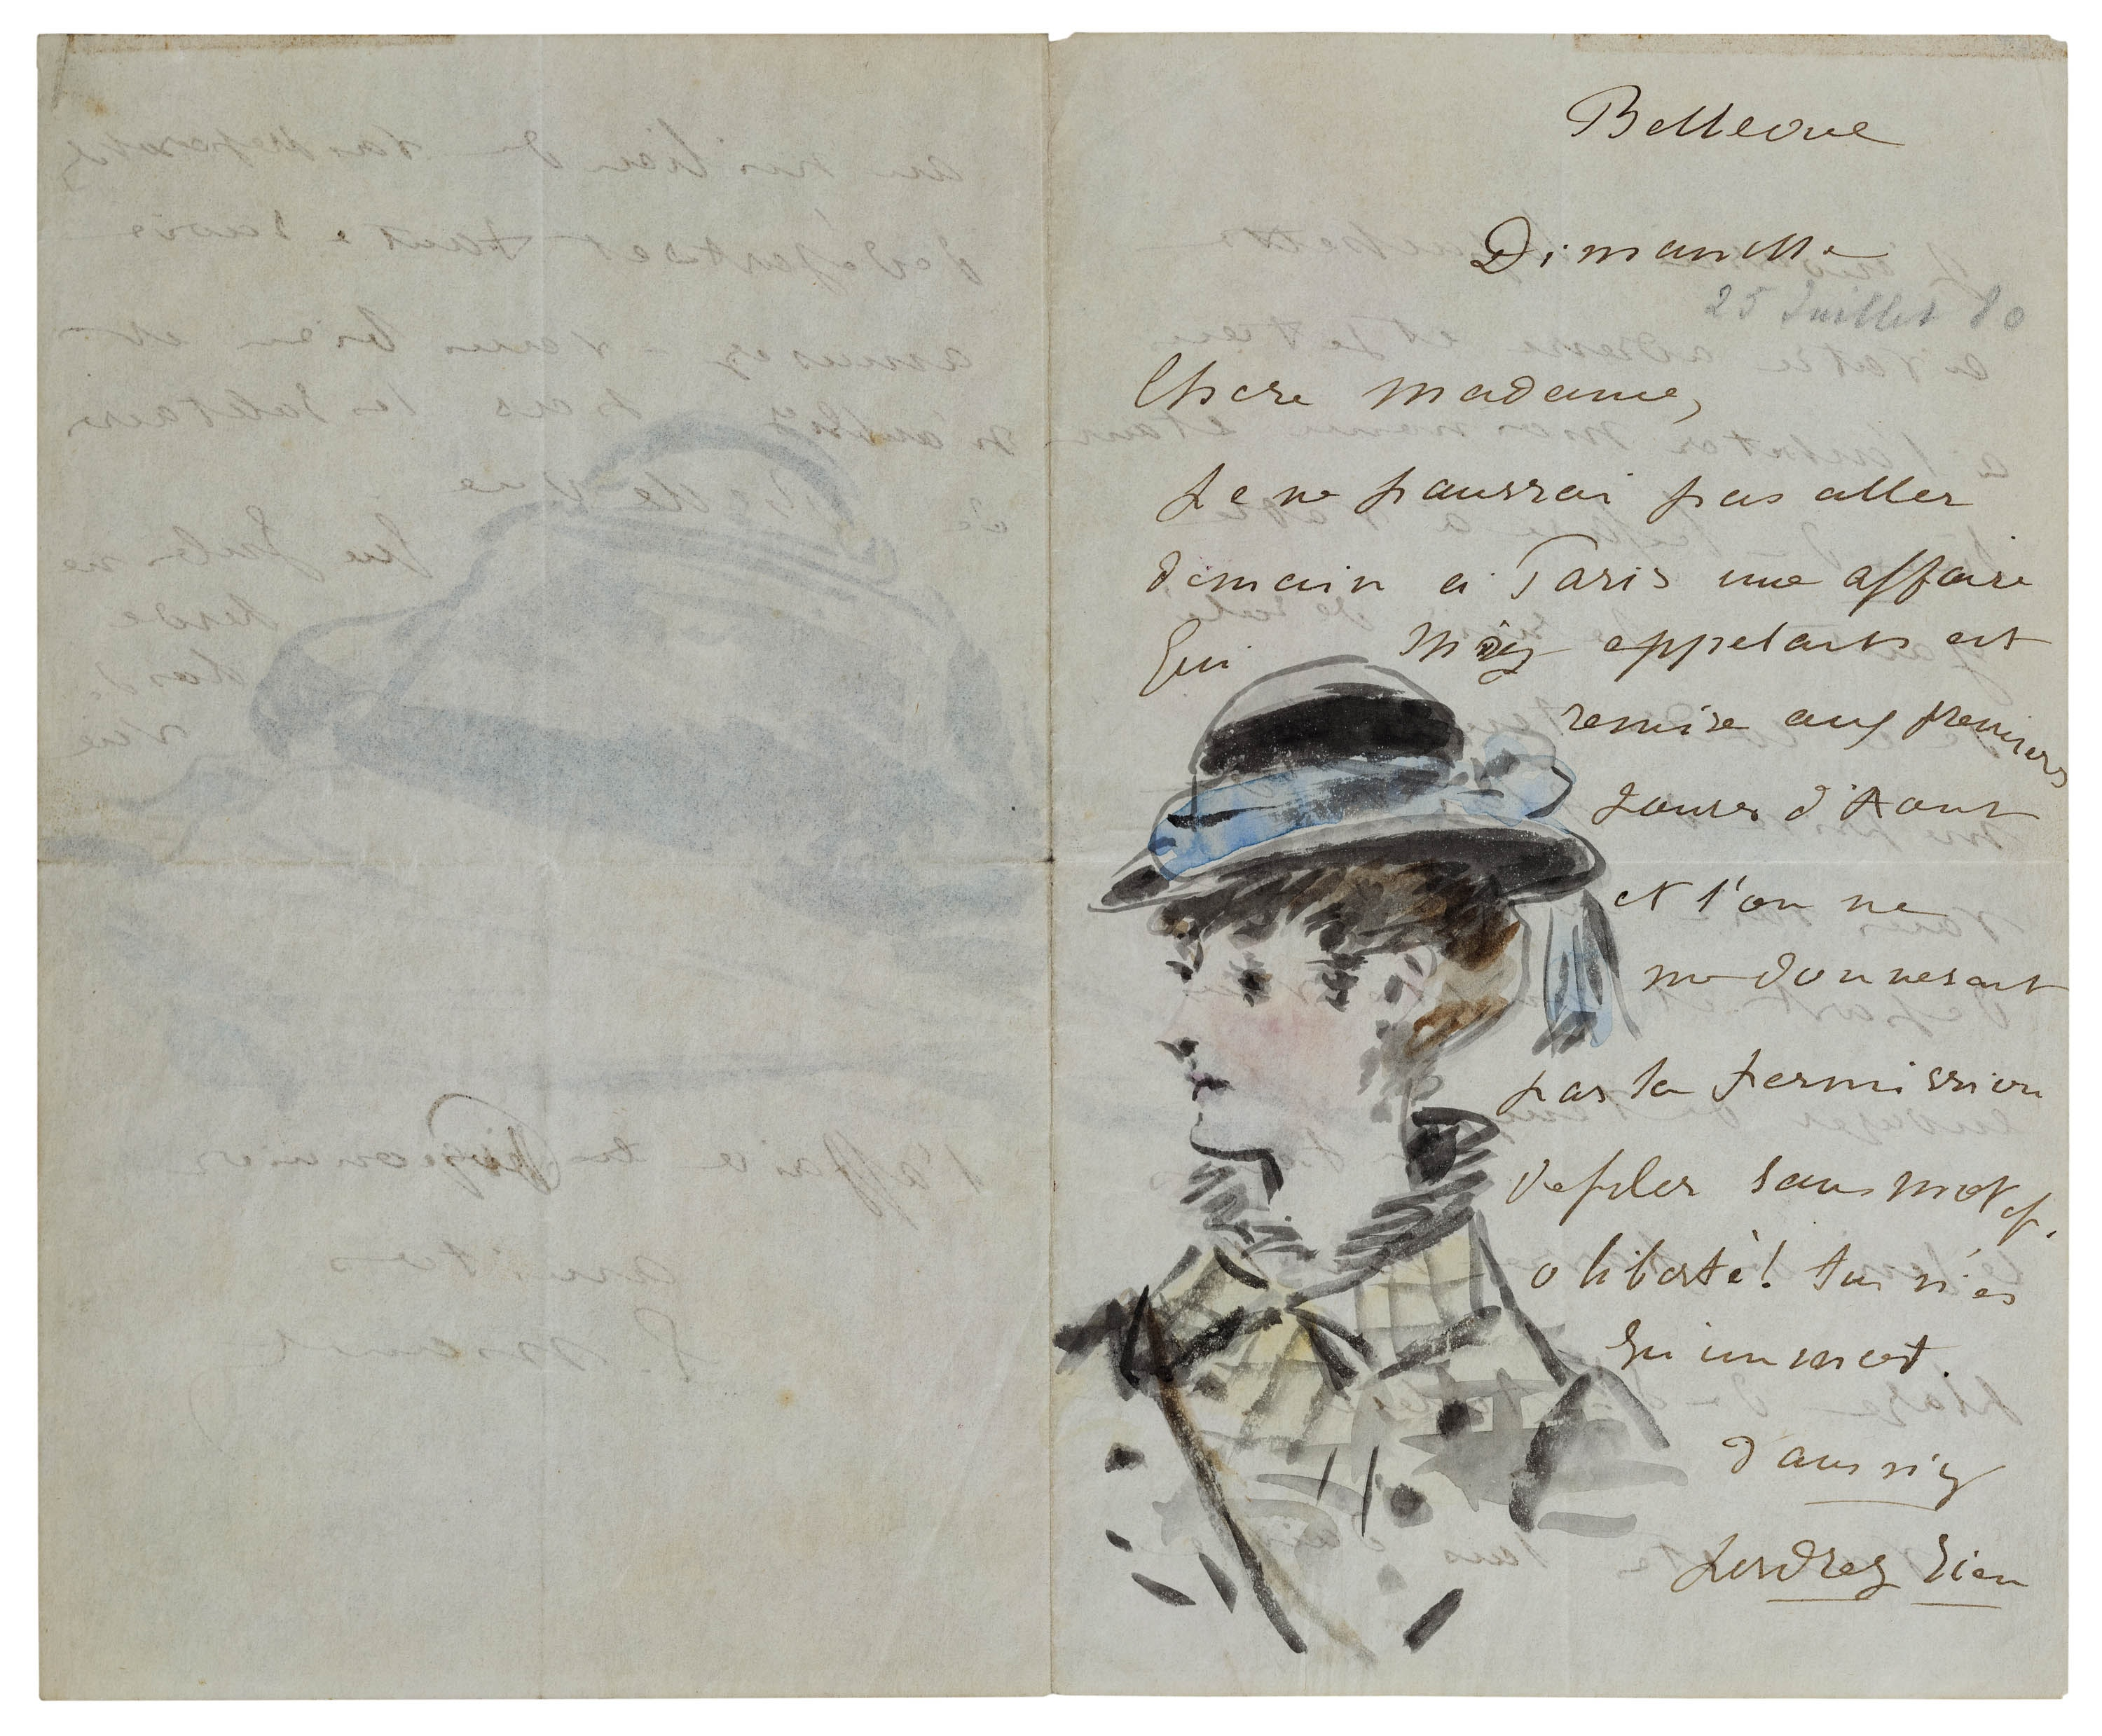 A letter in French includes a sketch of a young woman in a stylish hat and jacket.